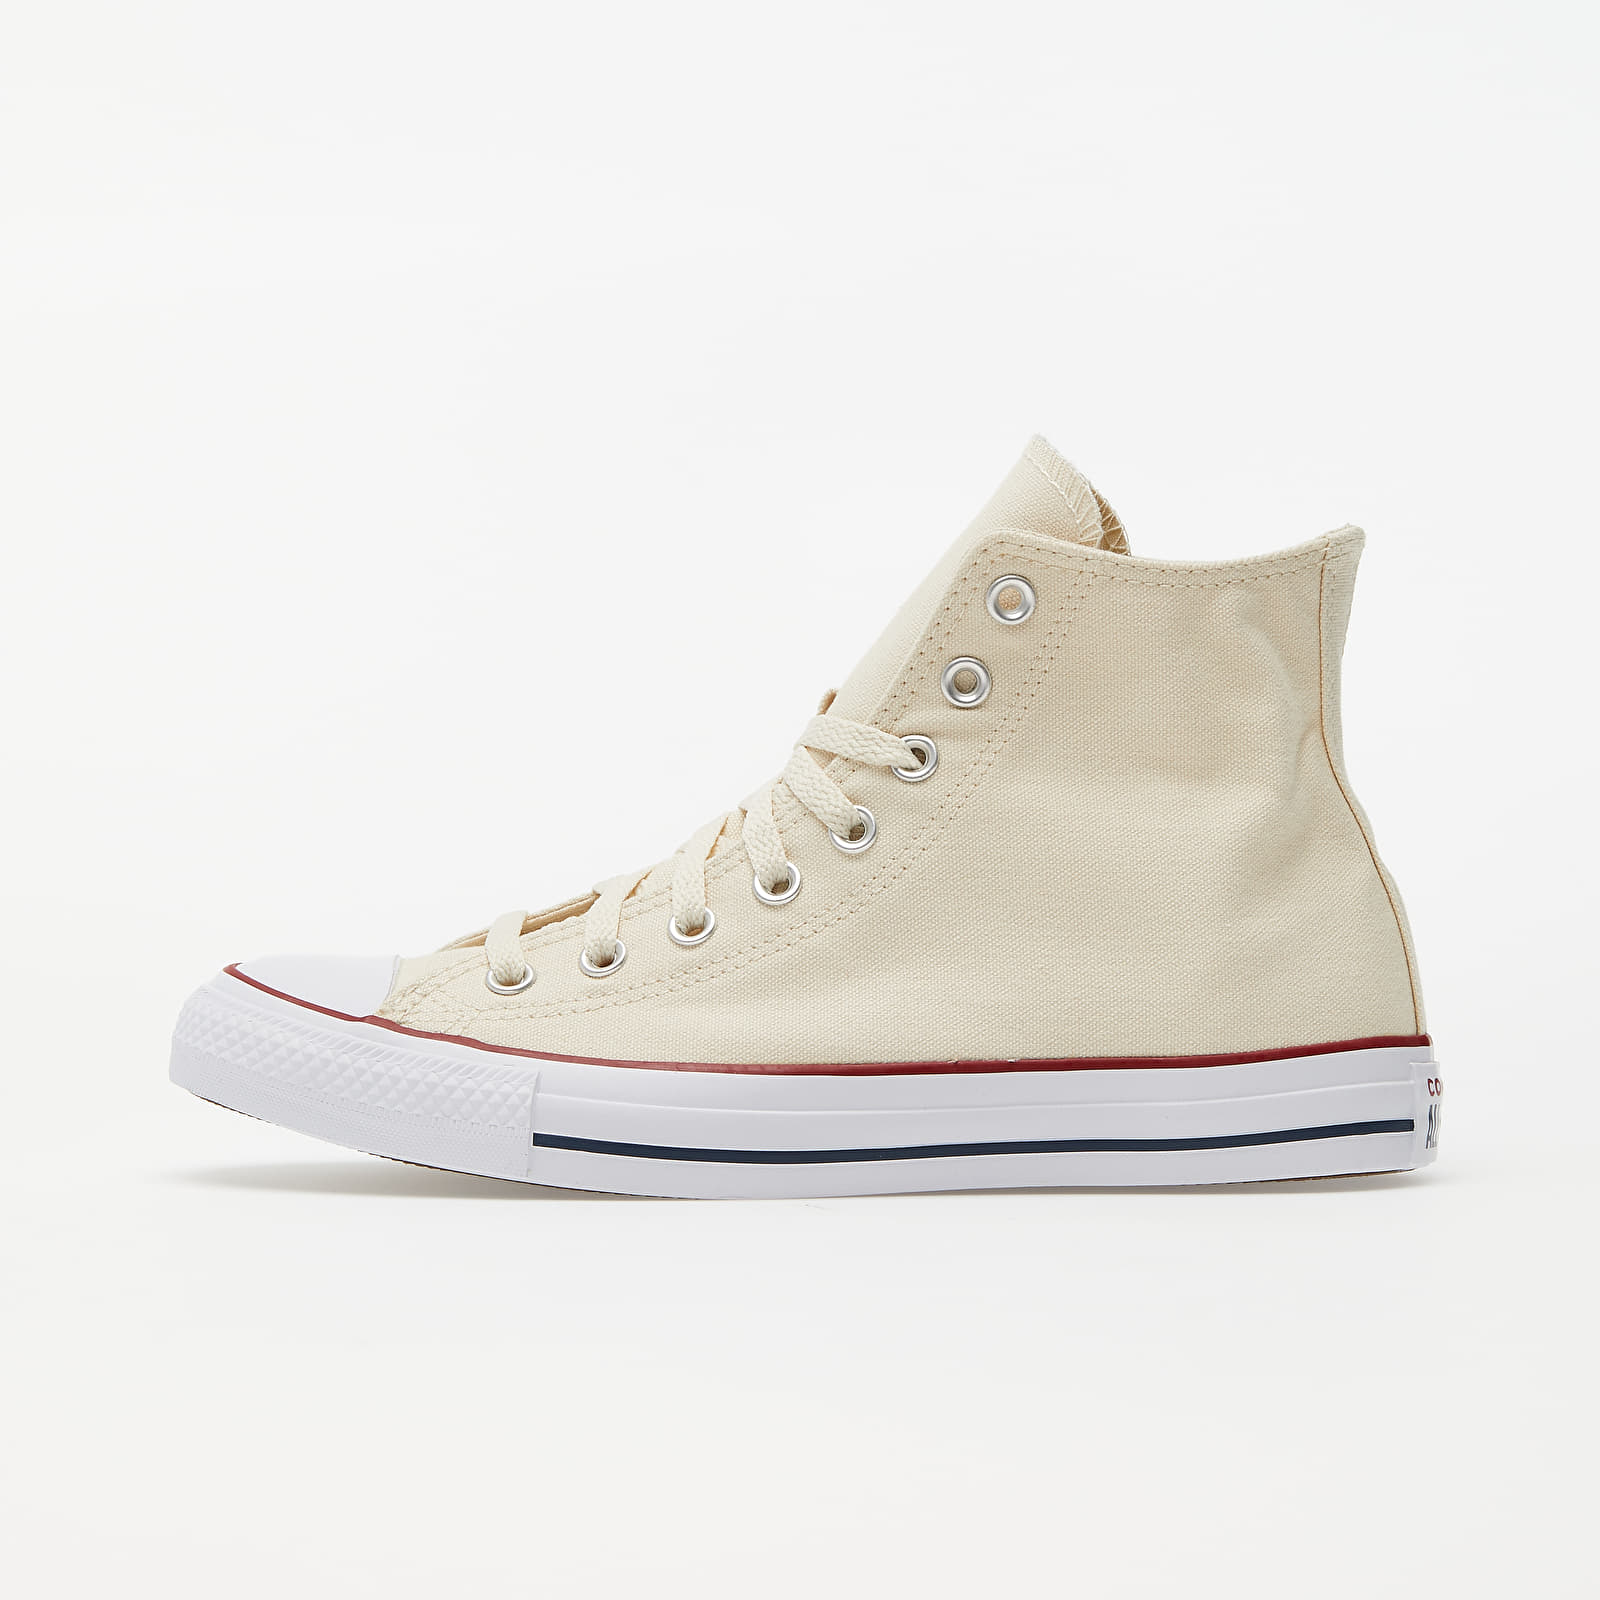 Men's shoes Converse Chuck Taylor All Star Natural